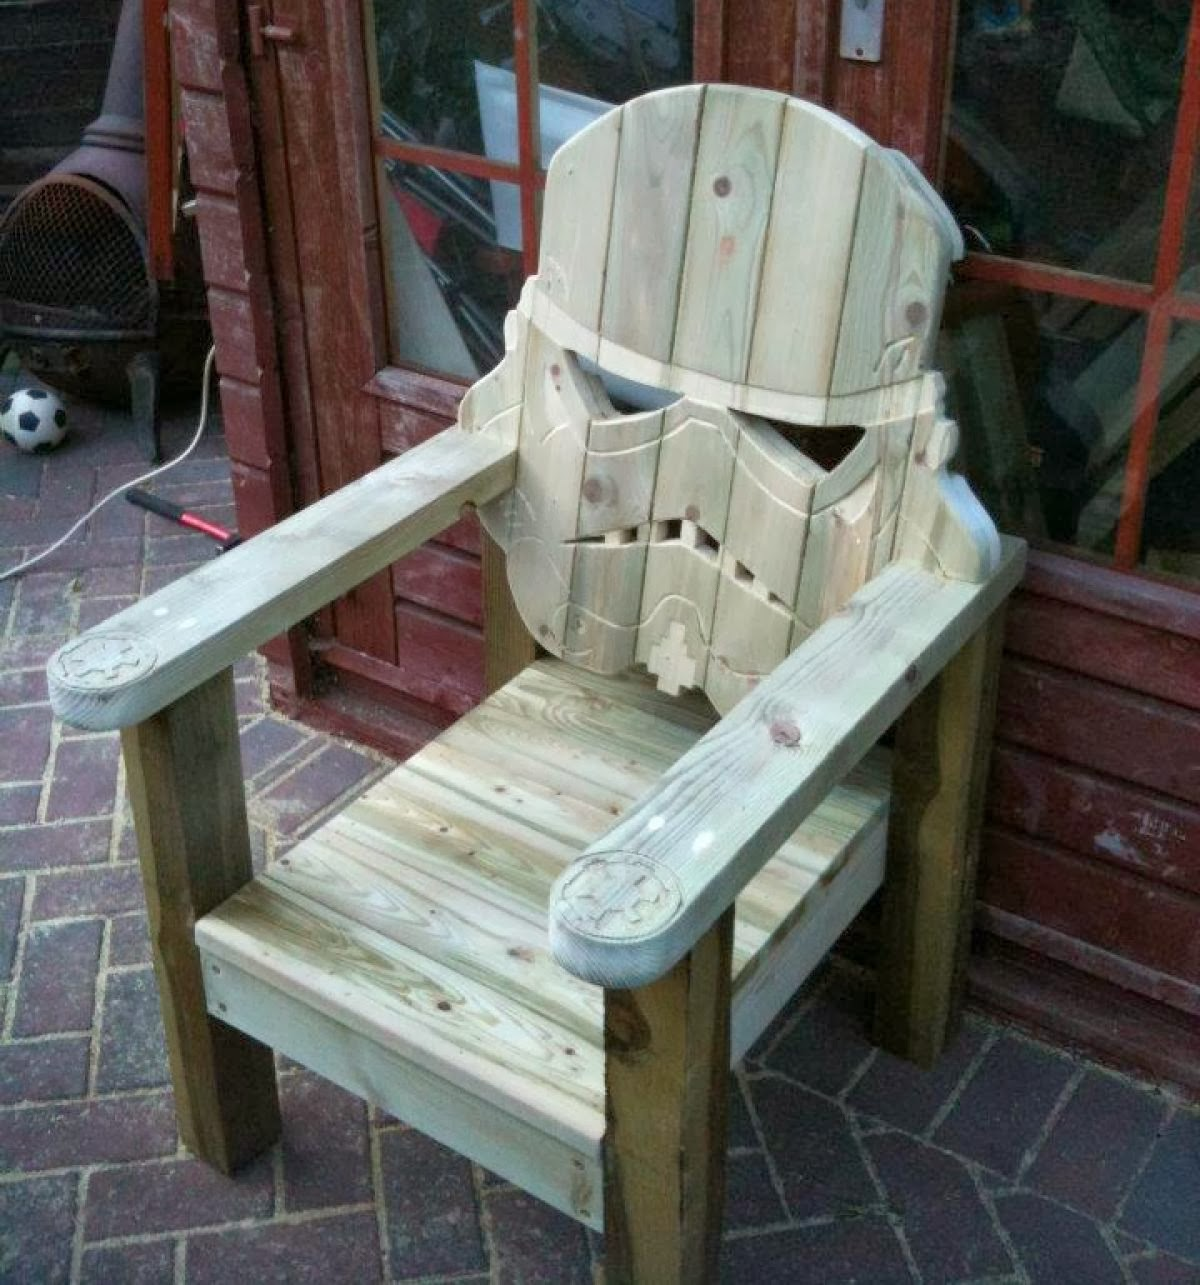 I Have Seen The Whole The Internet Star Wars Furniture